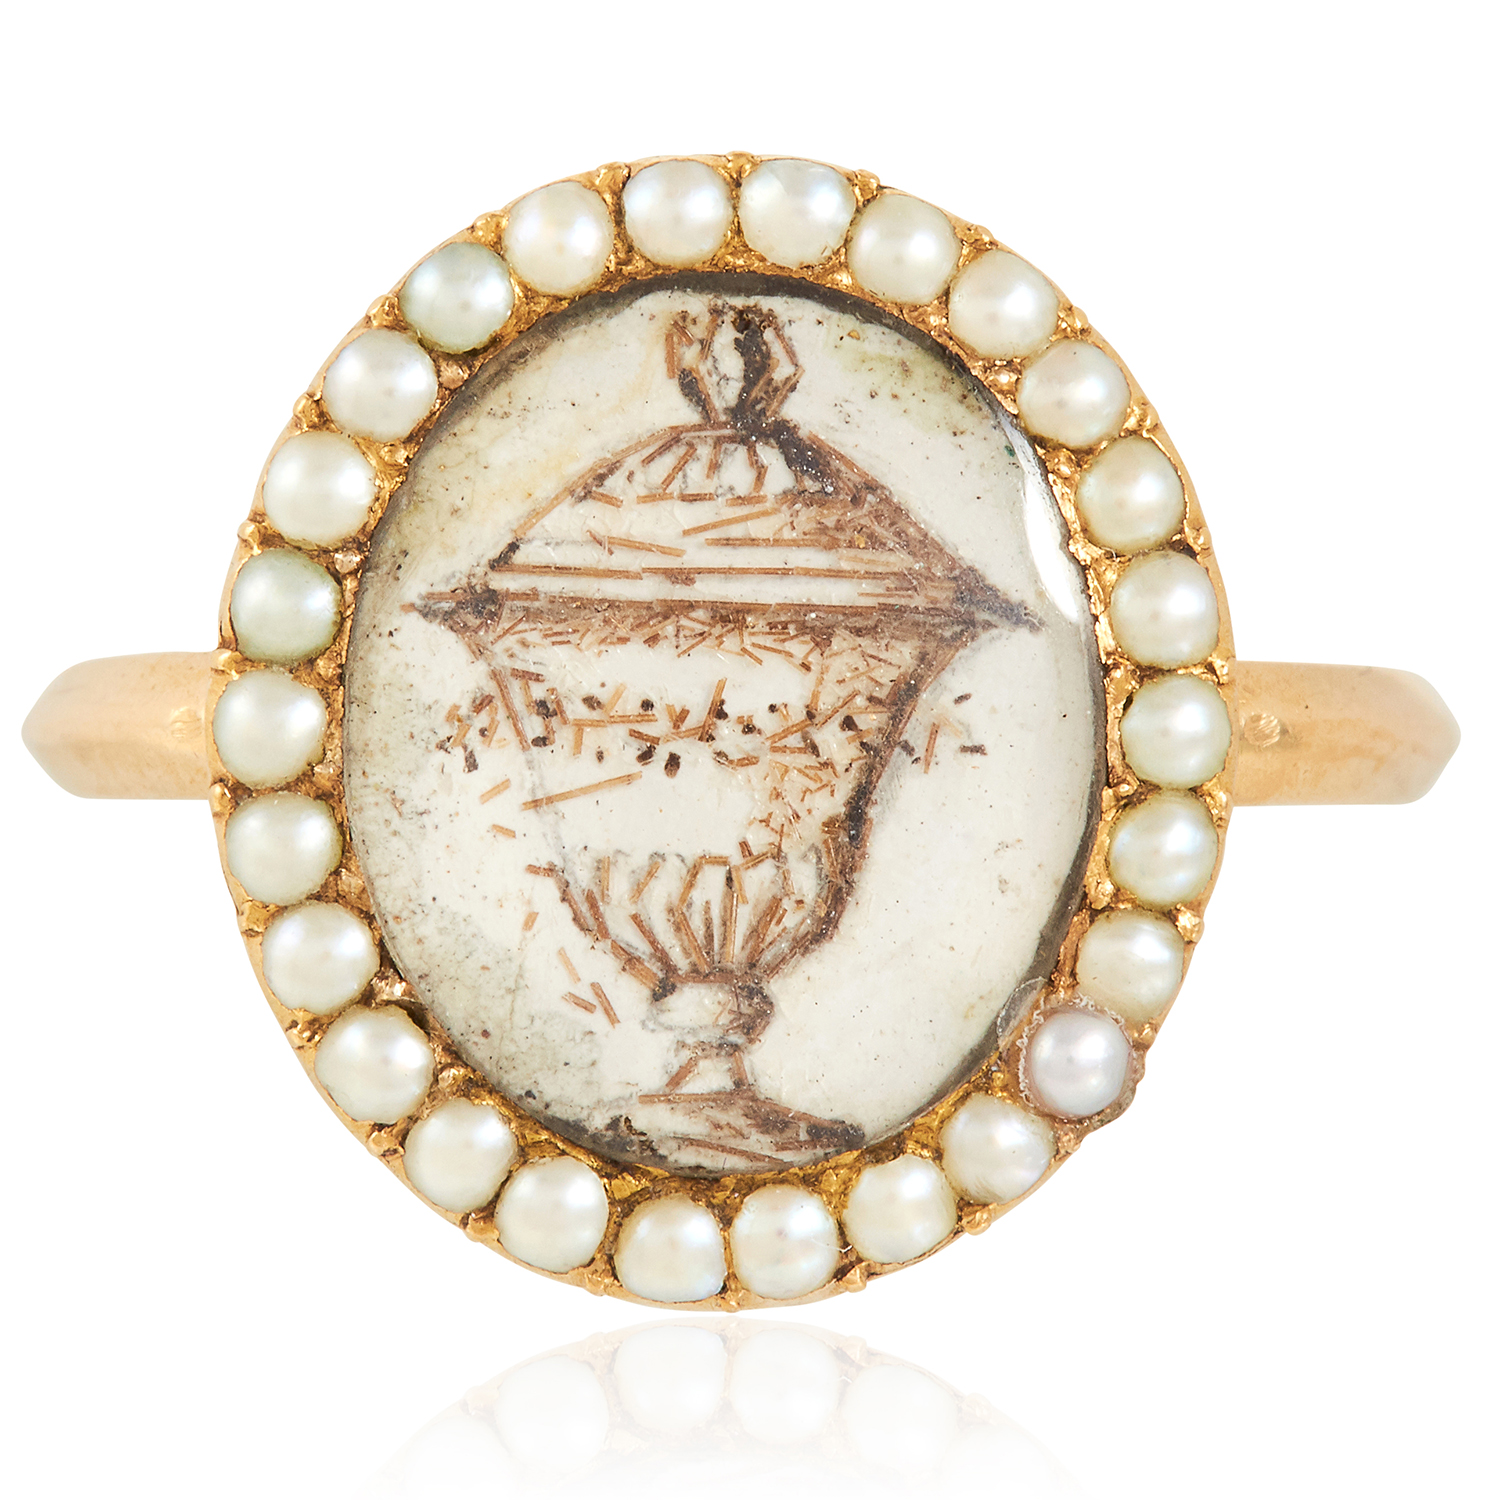 Los 53 - AN ANTIQUE GEORGIAN MINIATURE AND PEARL MOURNING RING, 18TH CENTURY in high carat yellow gold,